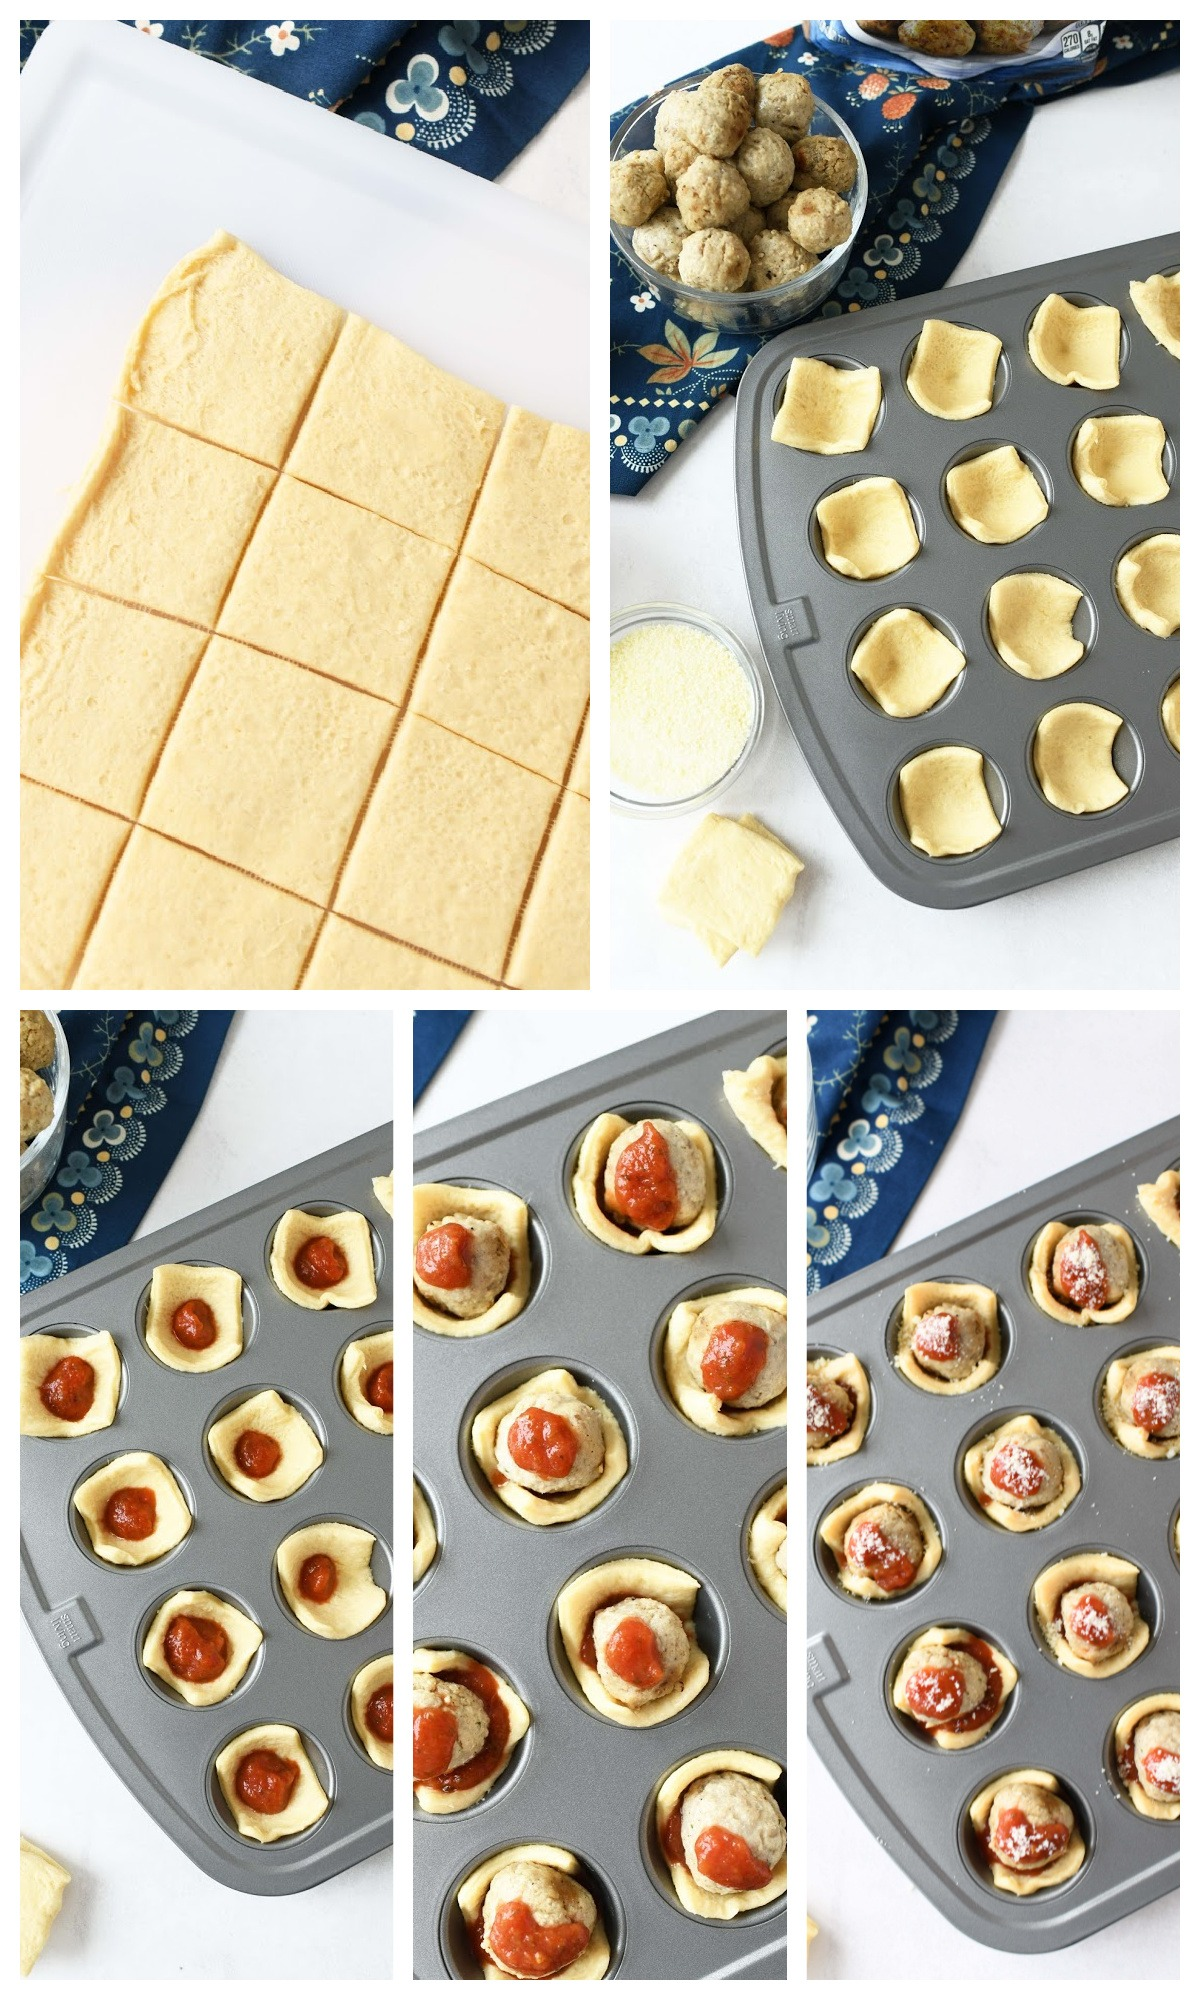 How to make meatball crescents collage of the steps needed to make these bites.